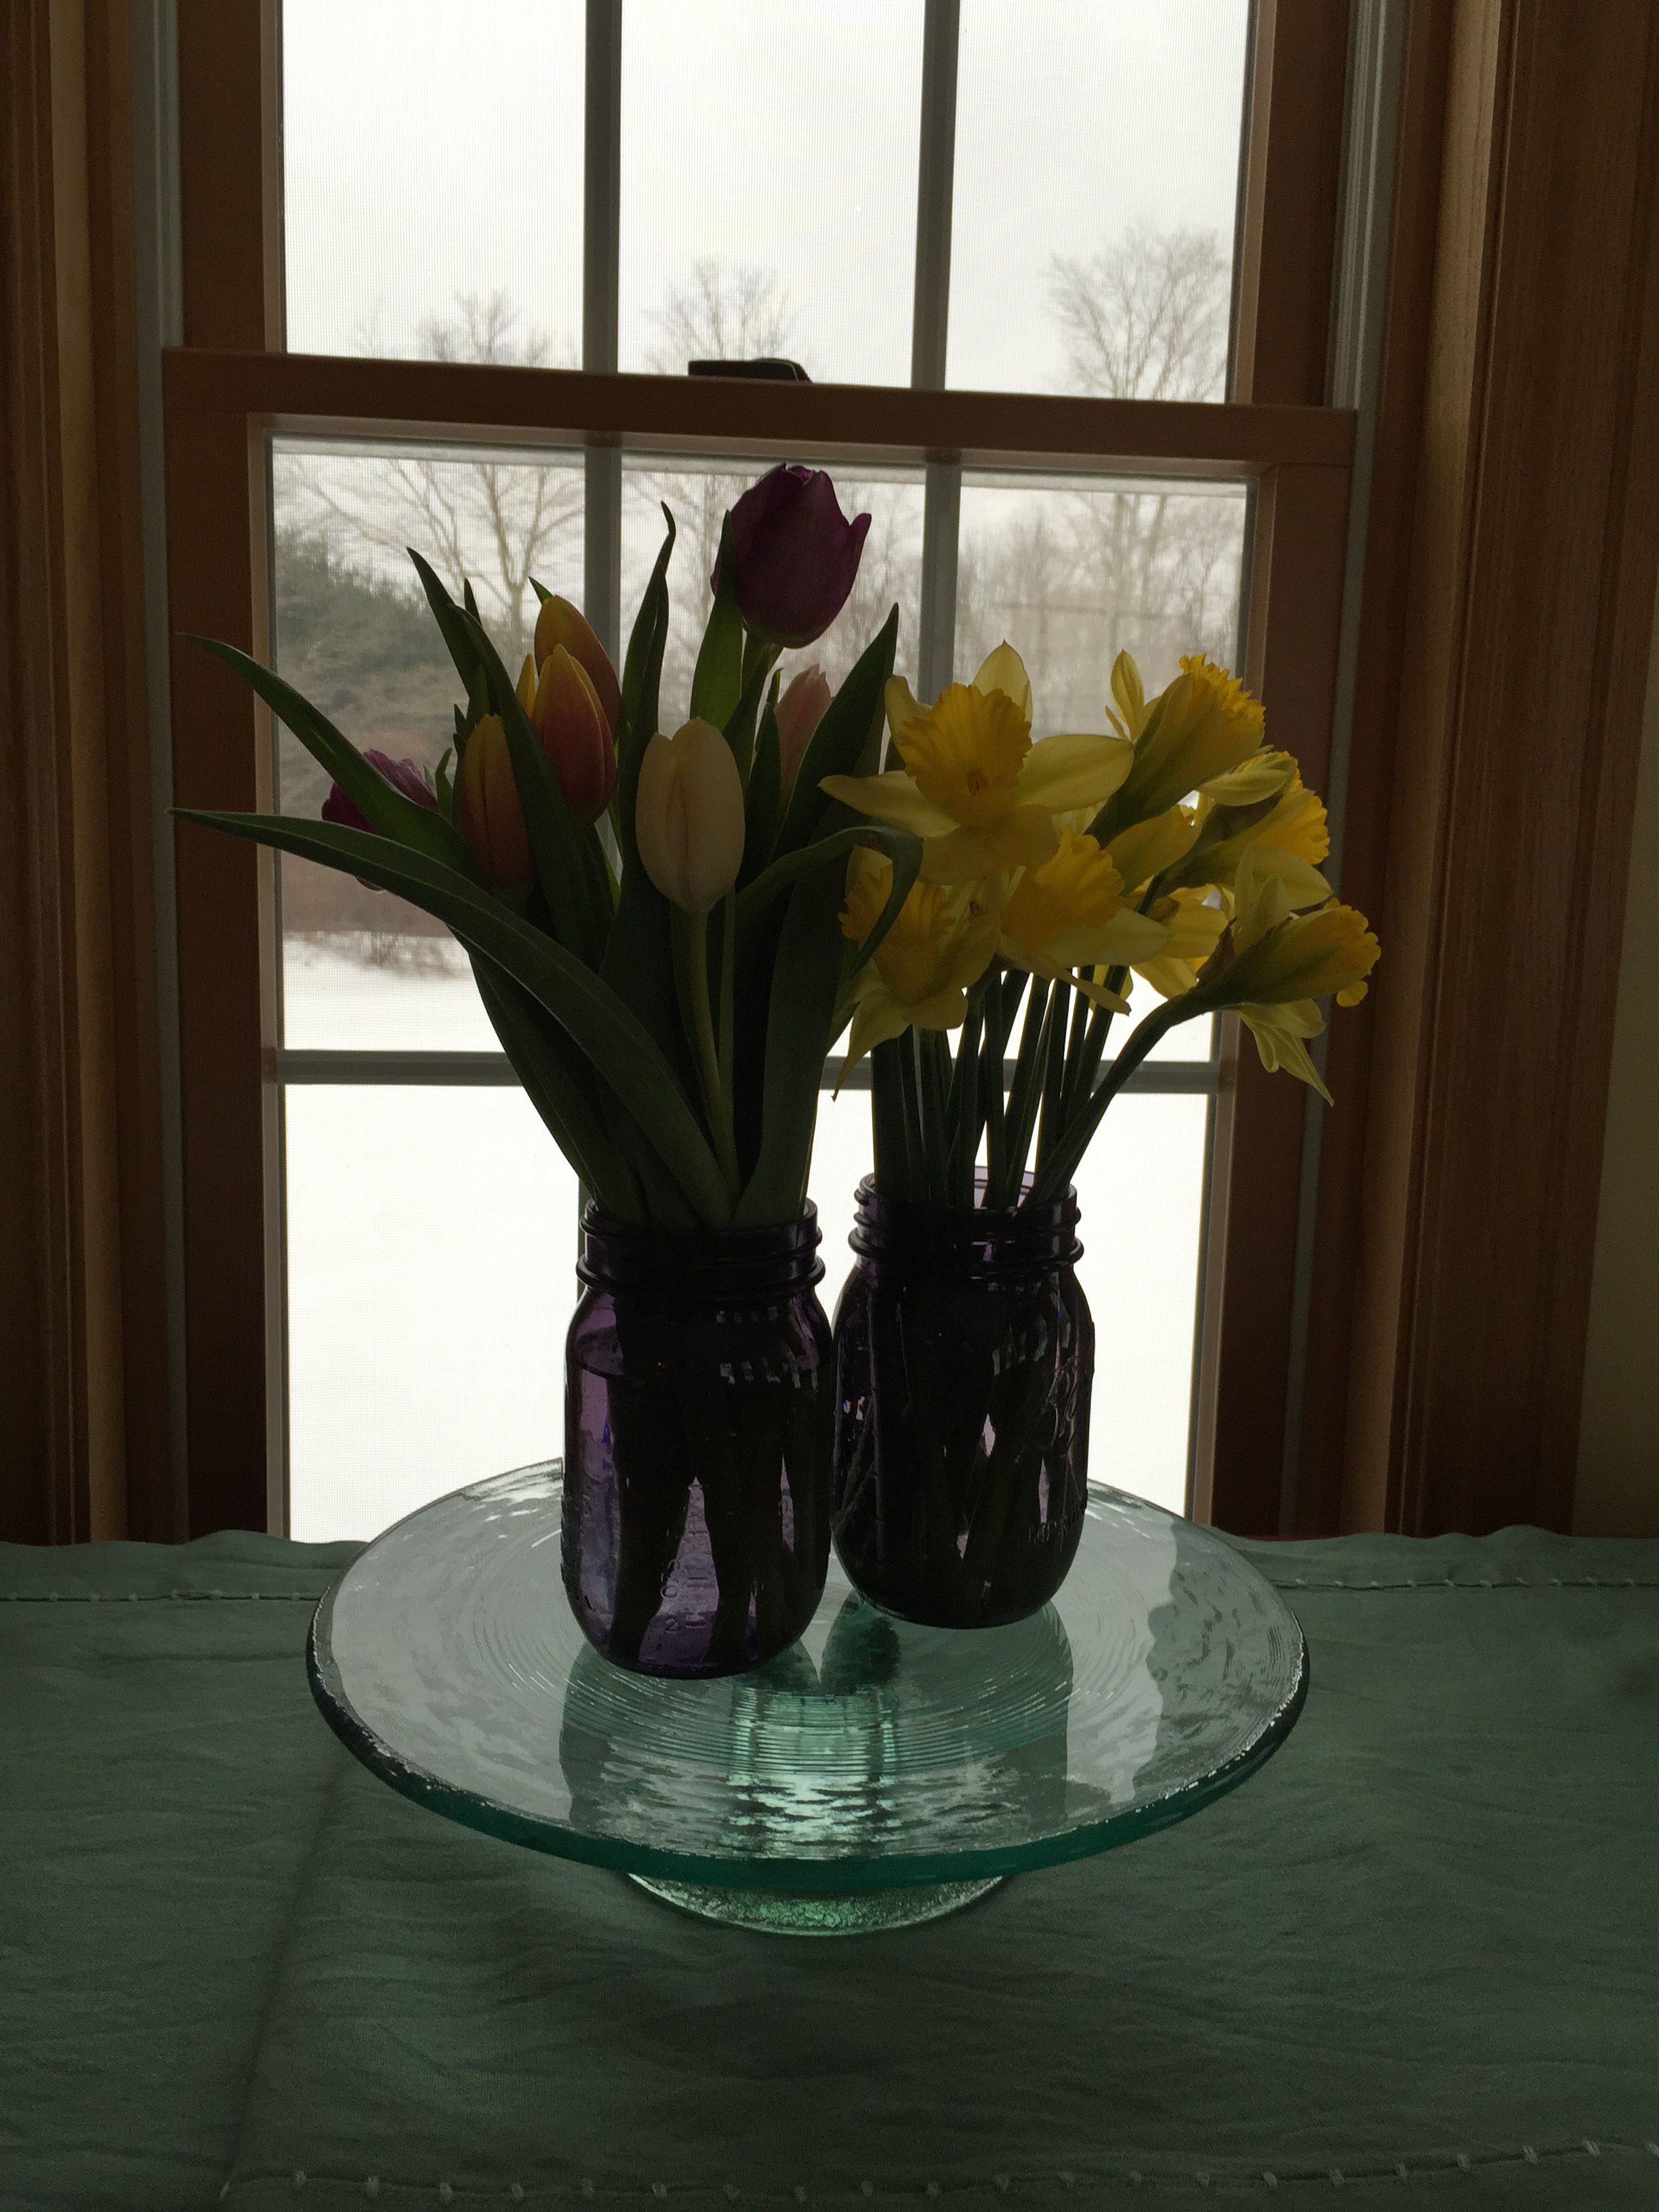 Daffodils and Tulips to remind us that Spring is near!